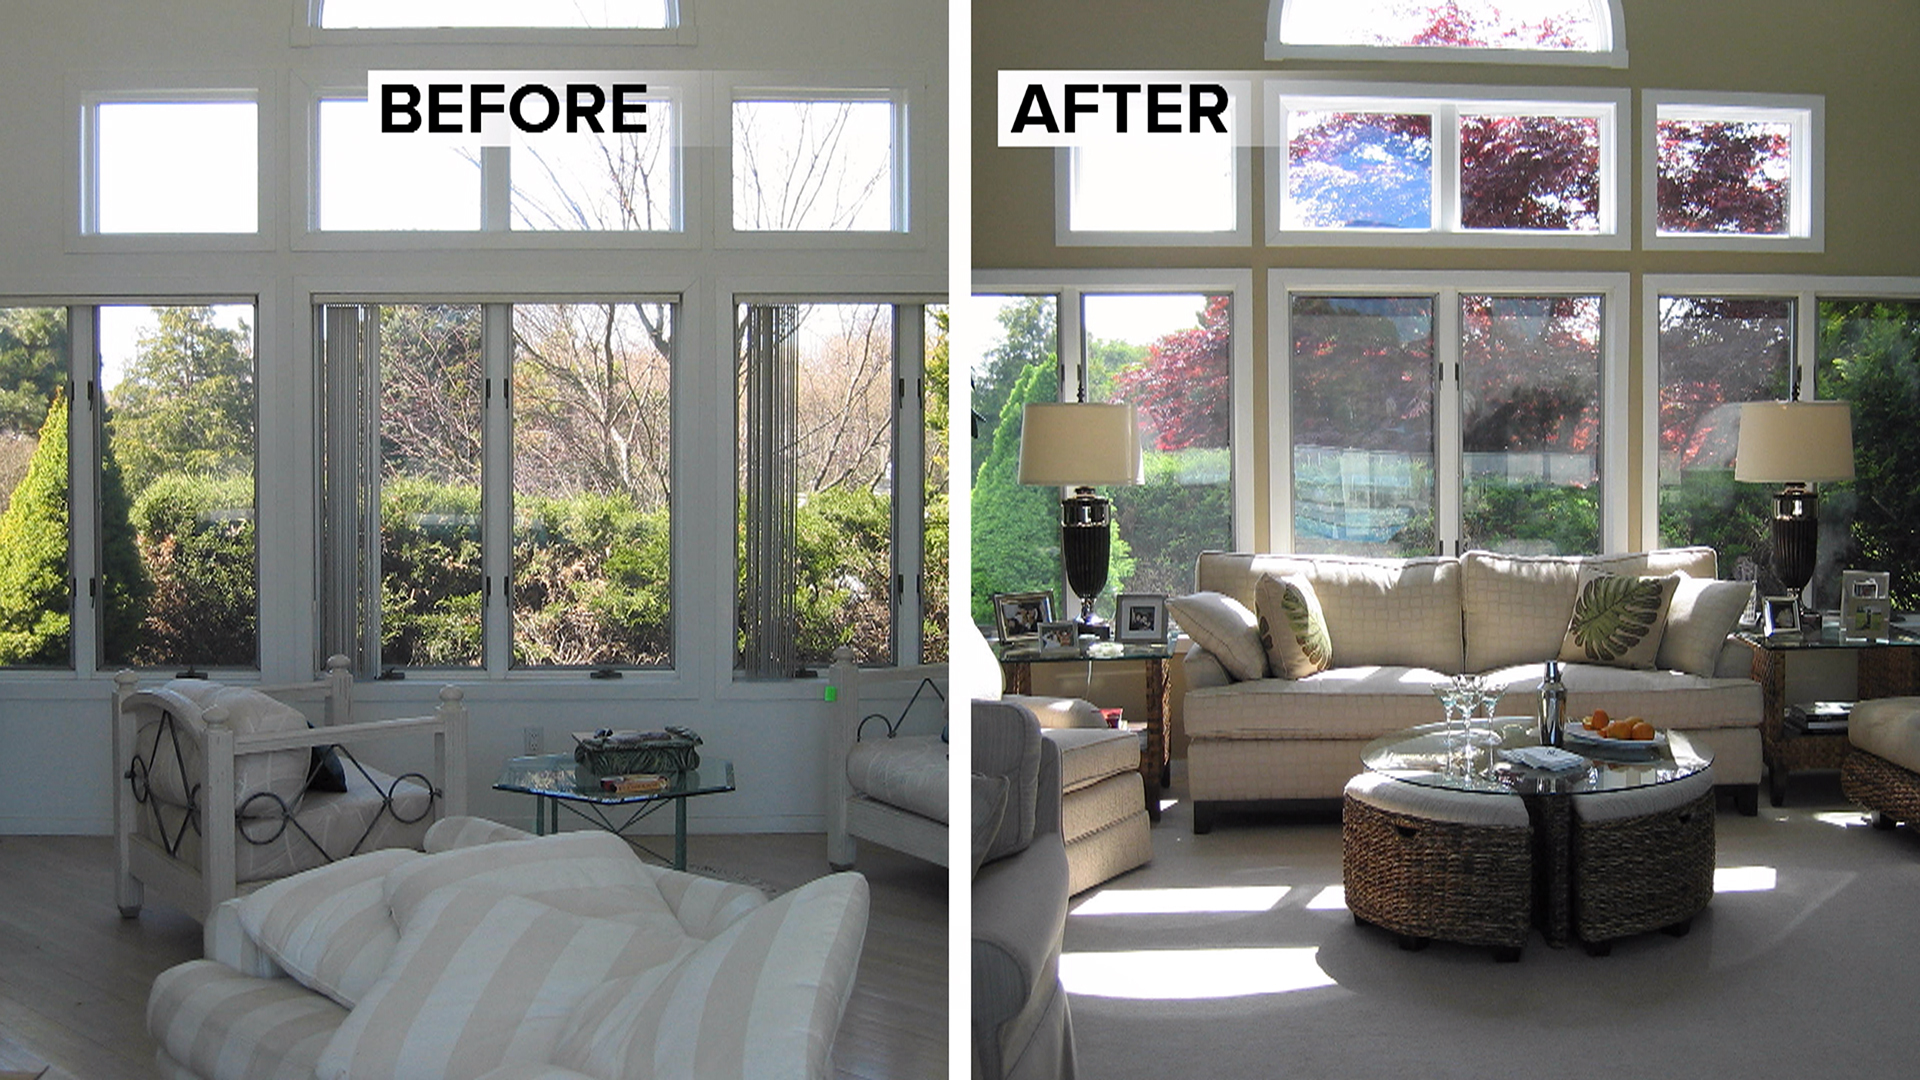 Quick Home Décor Fixes To Make Dramatic Changes